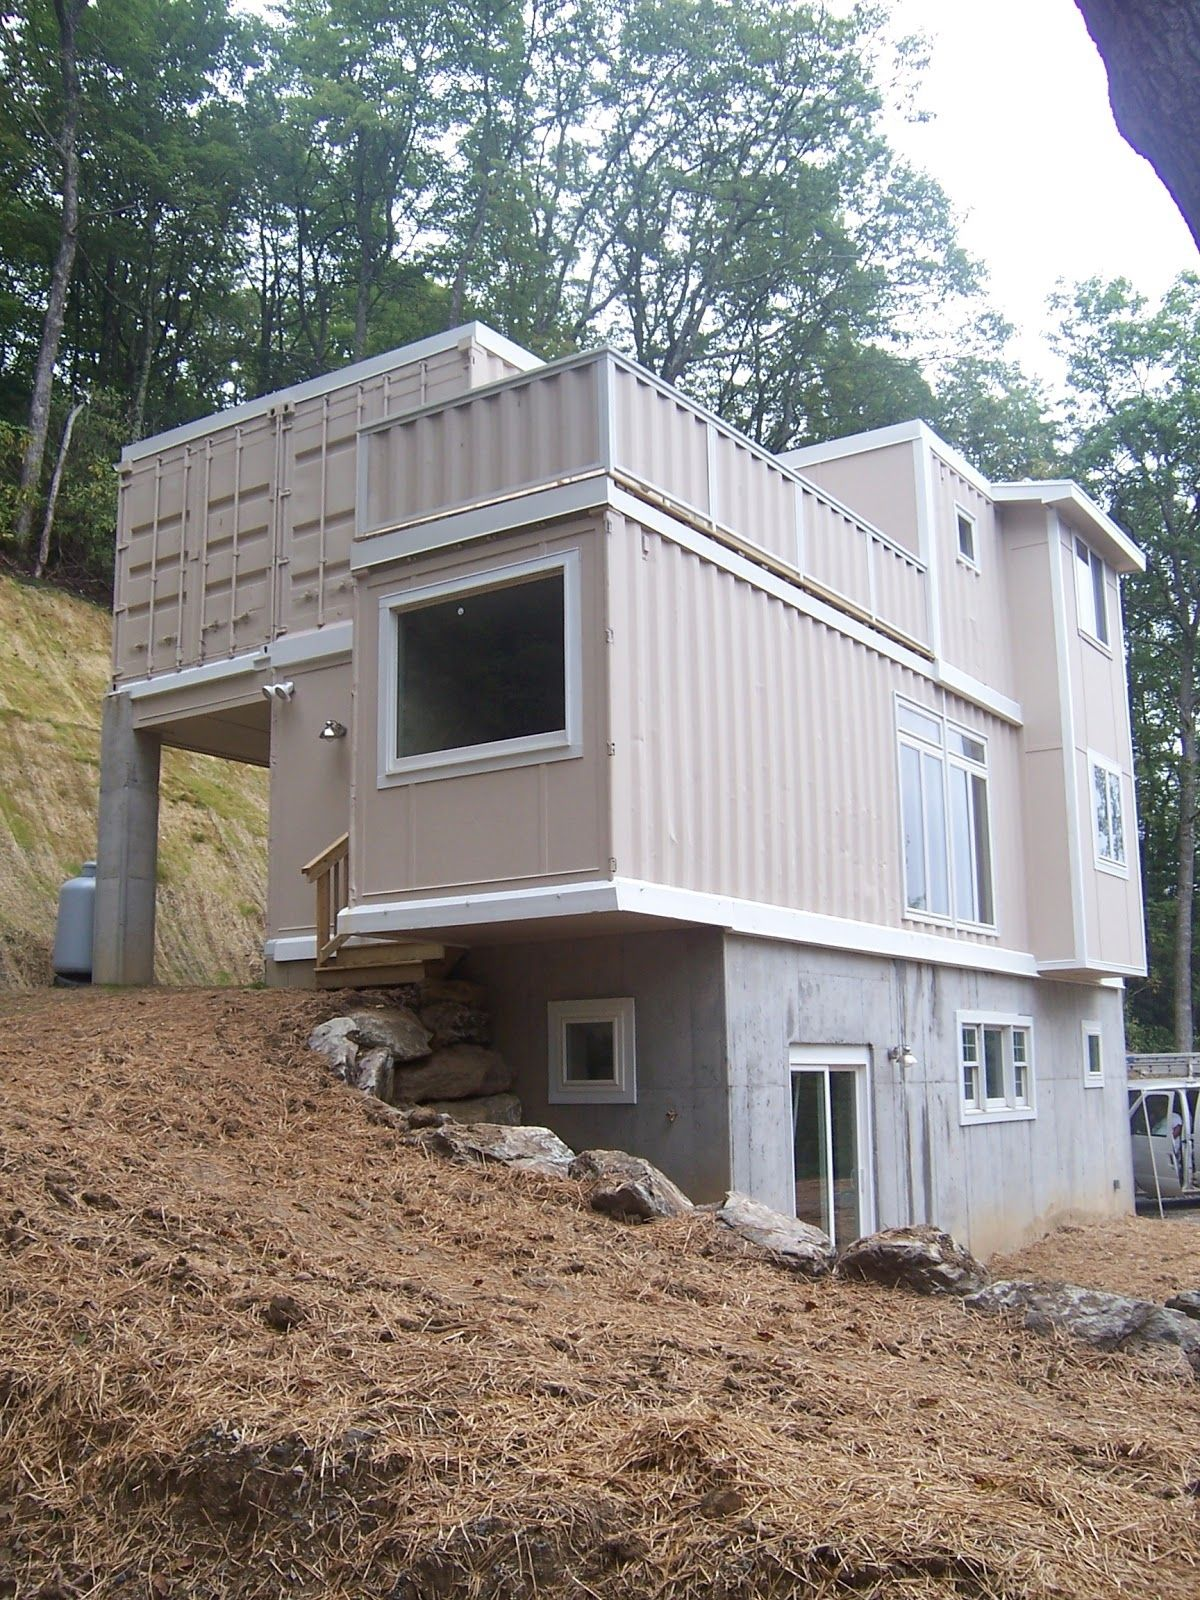 Modern shipping container homes in shipping container home for Shipping container home design software free